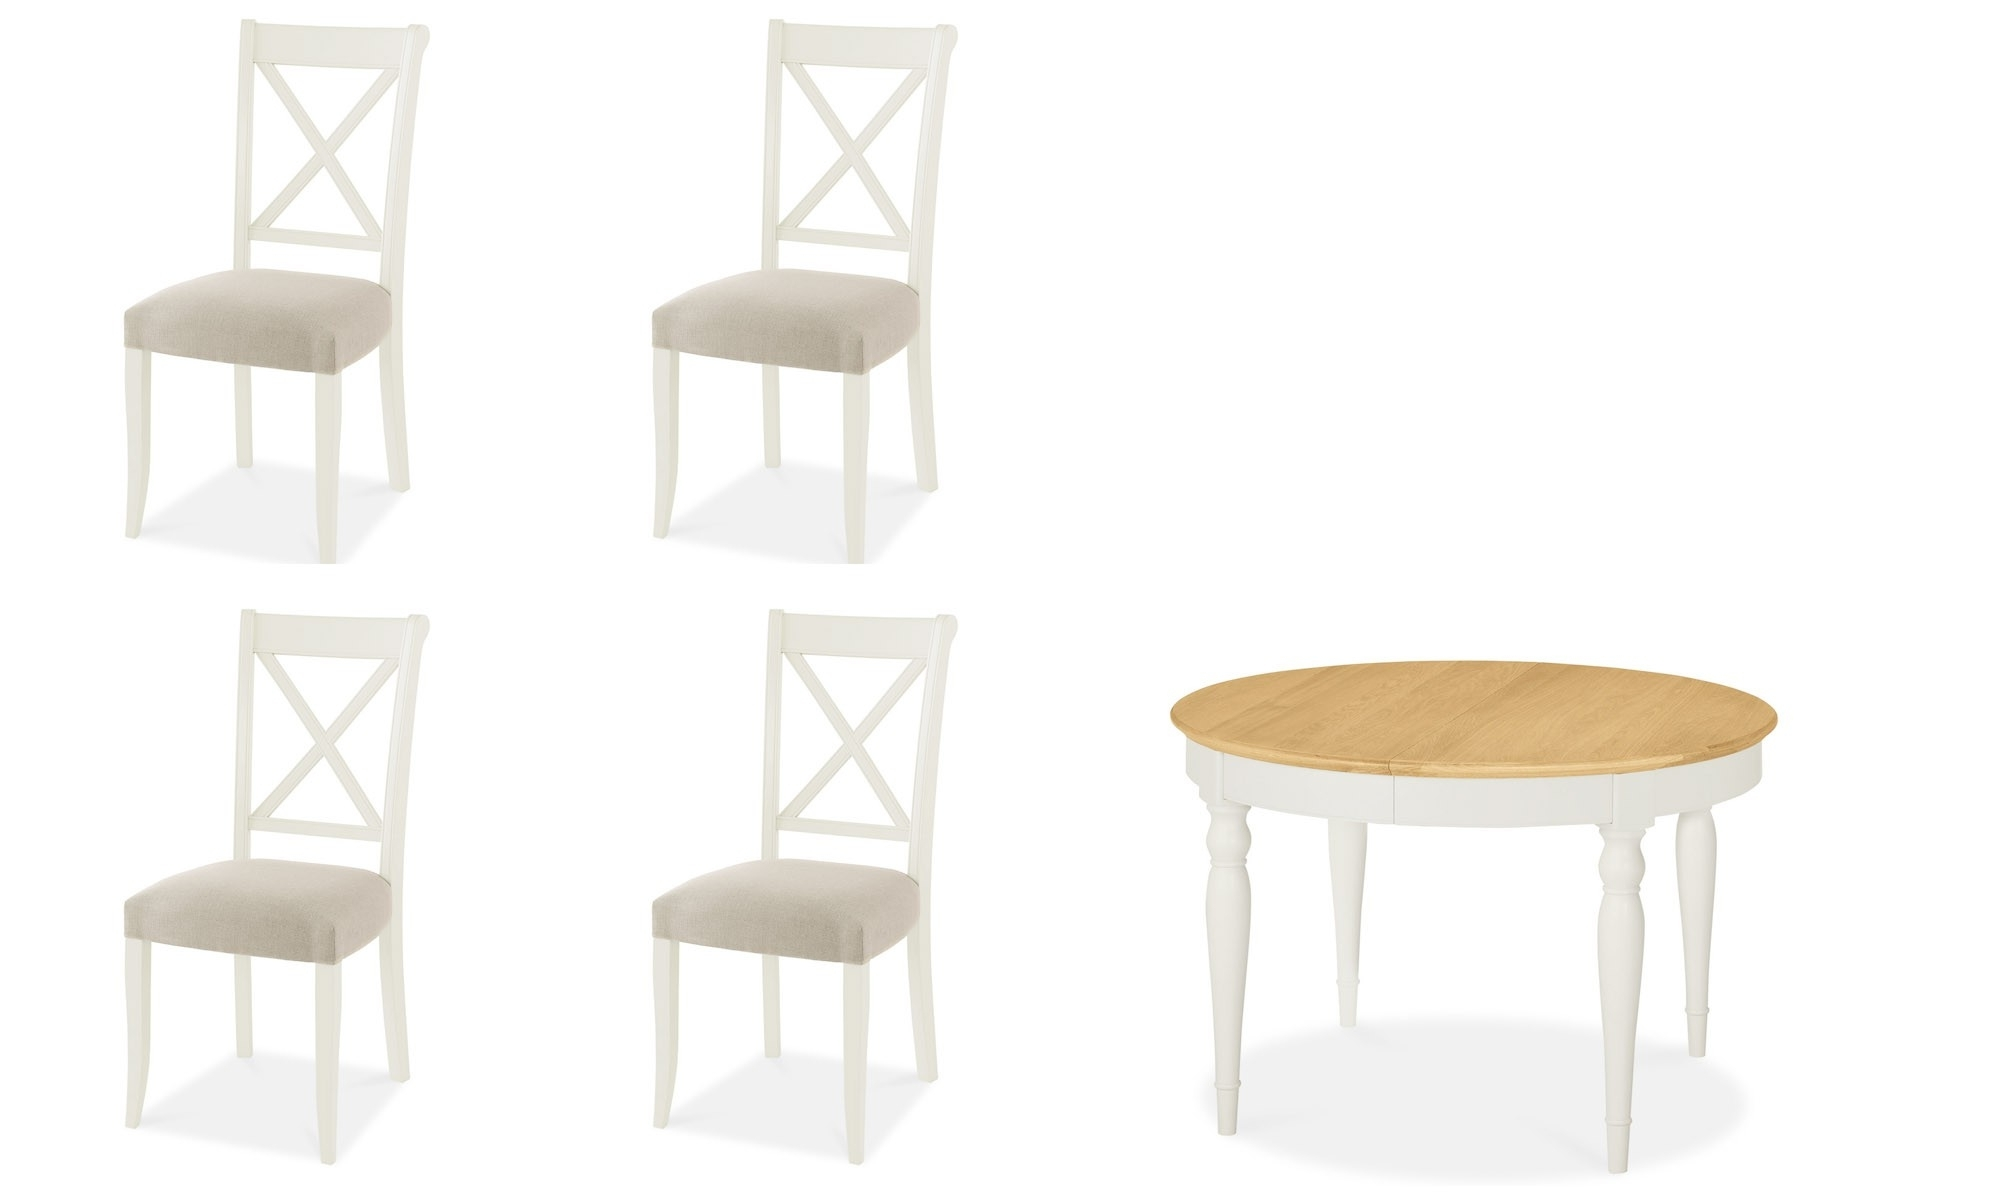 Famous Georgie – Round Extending Dining Table And Chairs In Cream – Oak Top In Extendable Dining Table And 4 Chairs (View 9 of 25)